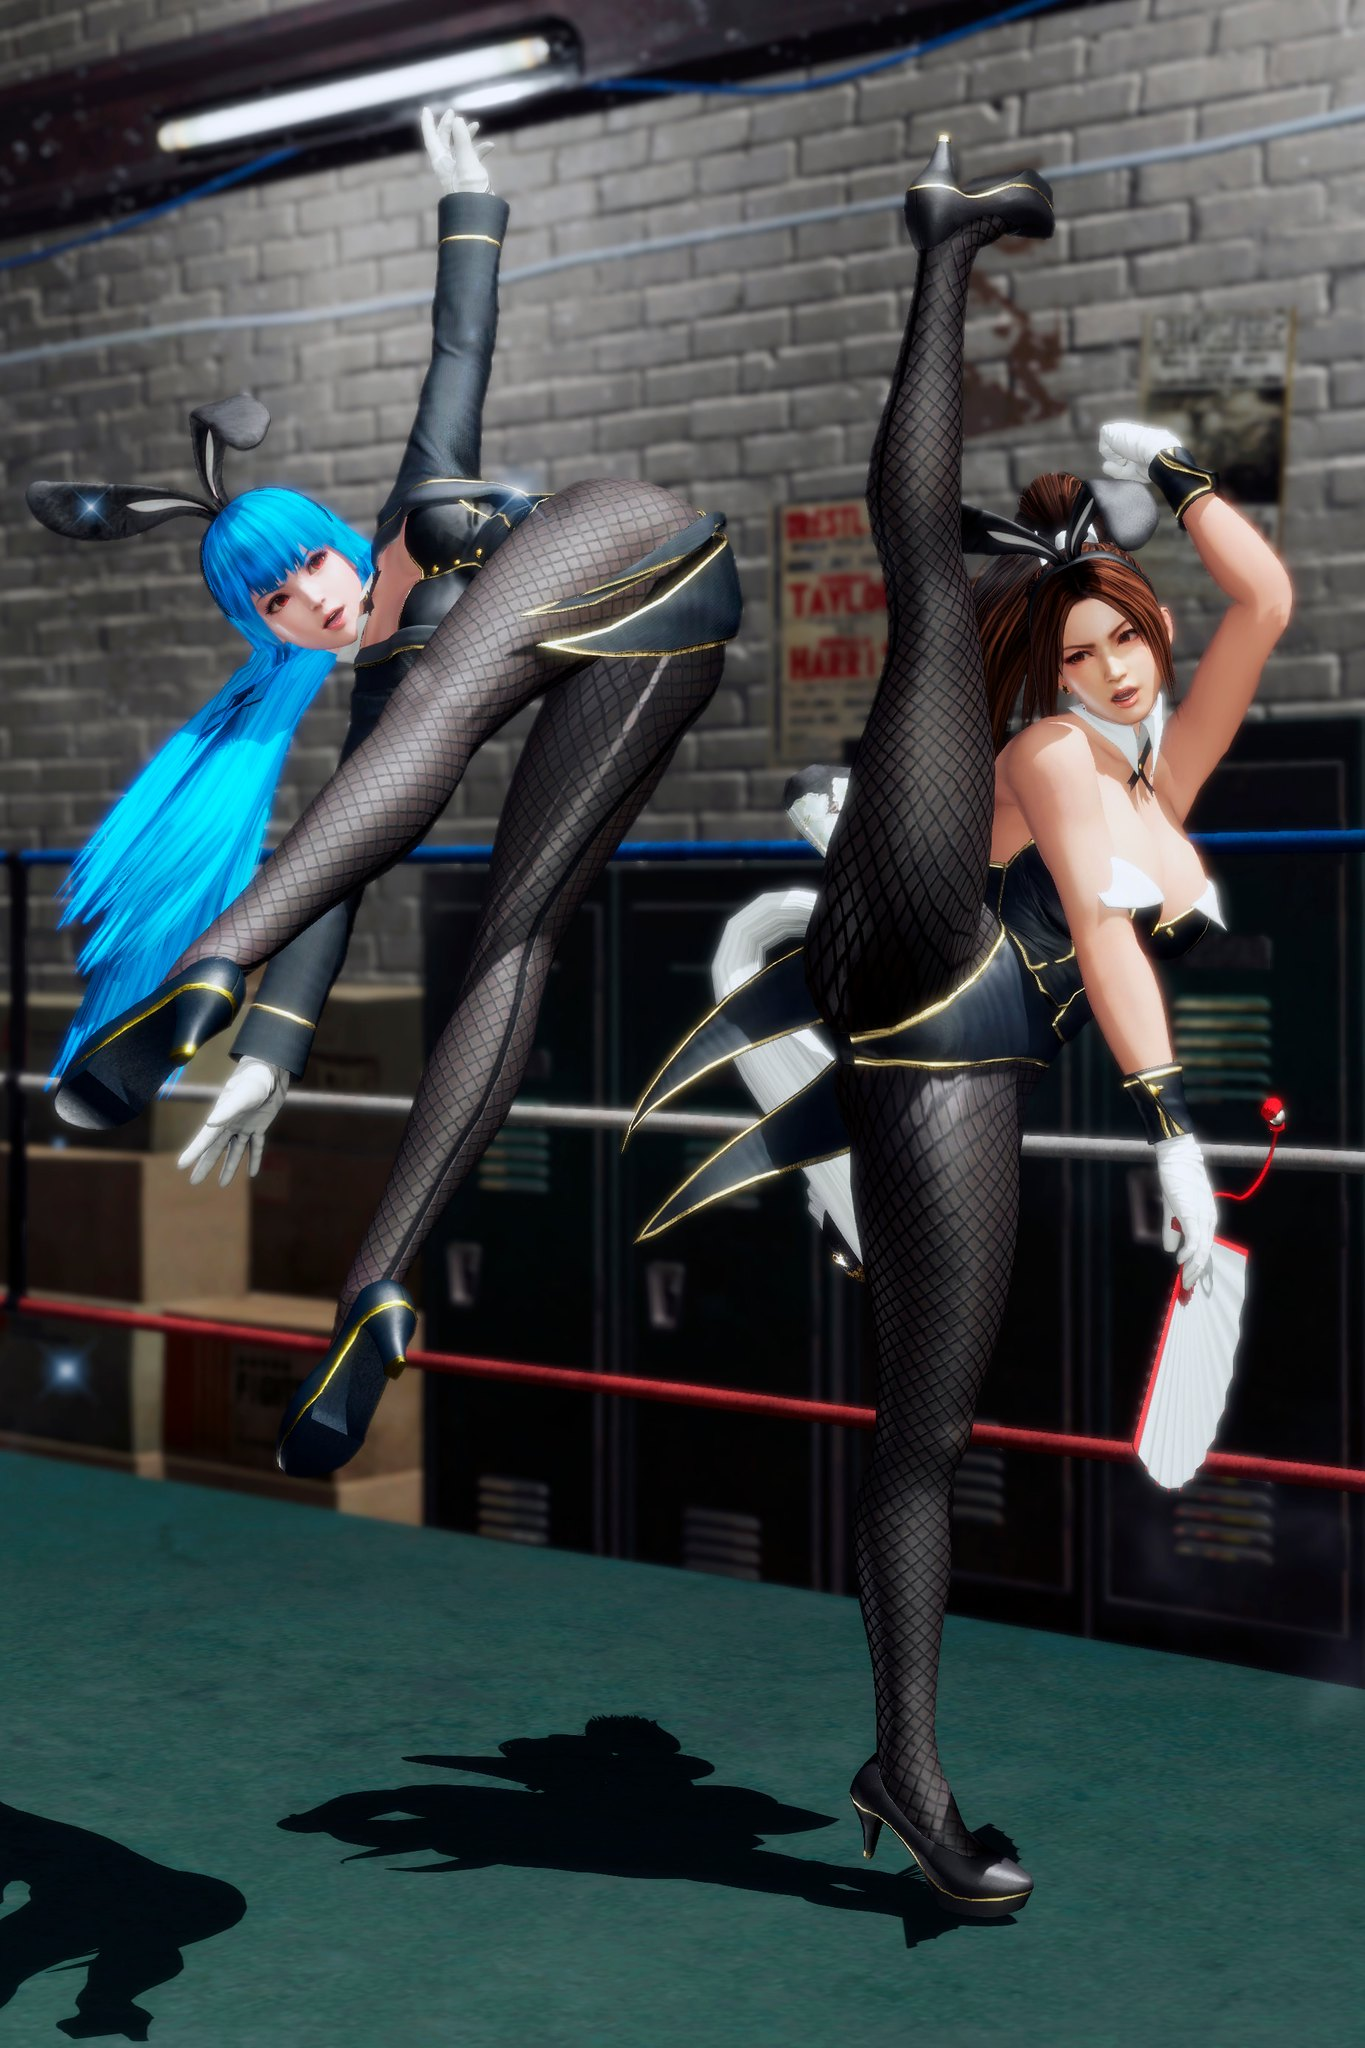 Dead or Alive 6 - Kula and Mai Bunny Costumes